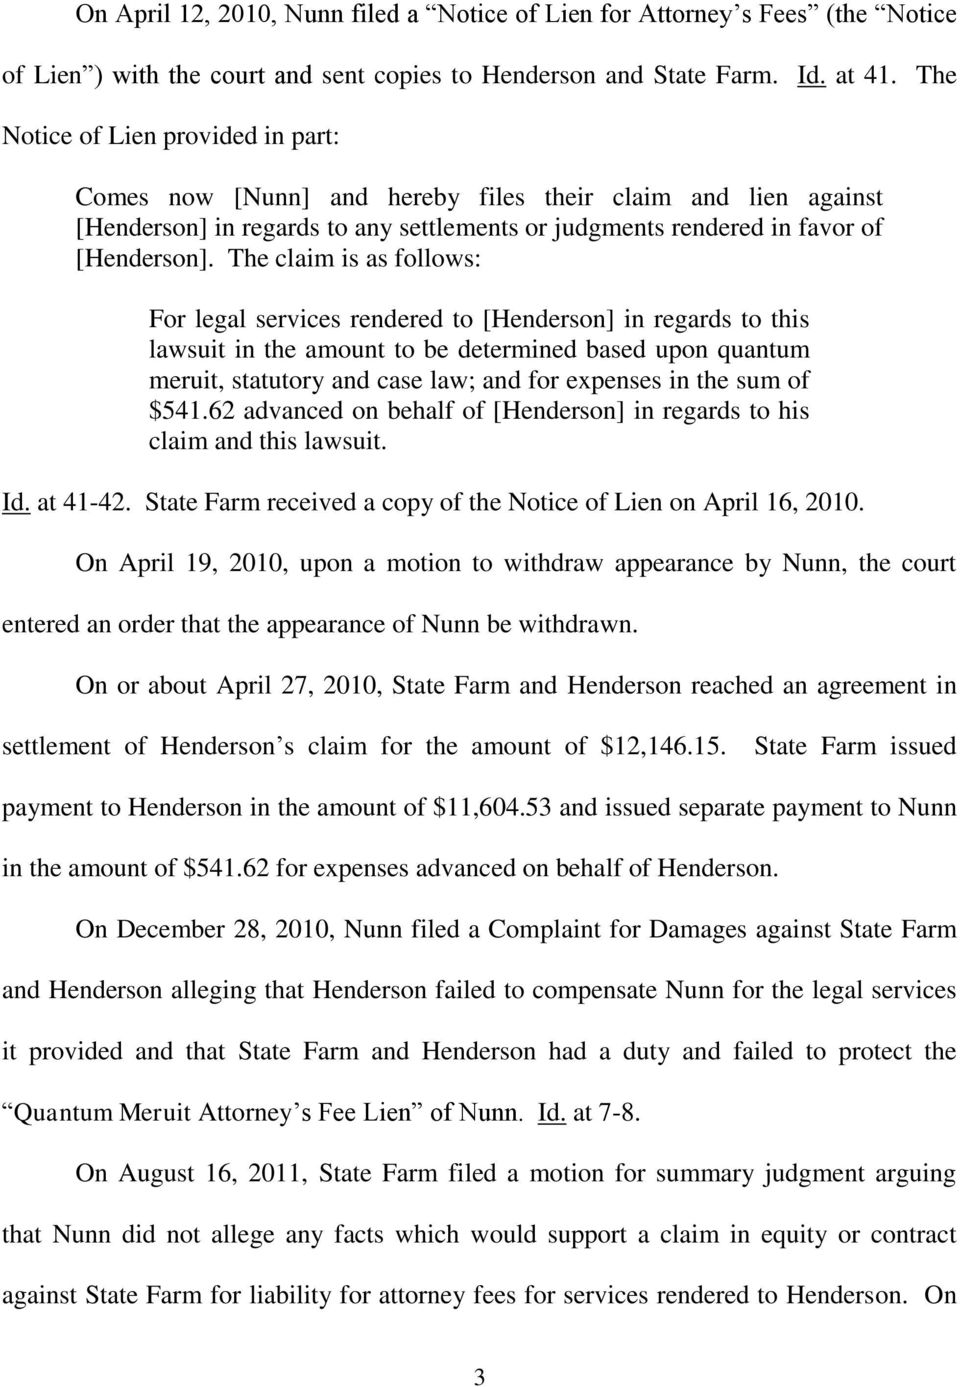 The claim is as follows: For legal services rendered to [Henderson] in regards to this lawsuit in the amount to be determined based upon quantum meruit, statutory and case law; and for expenses in